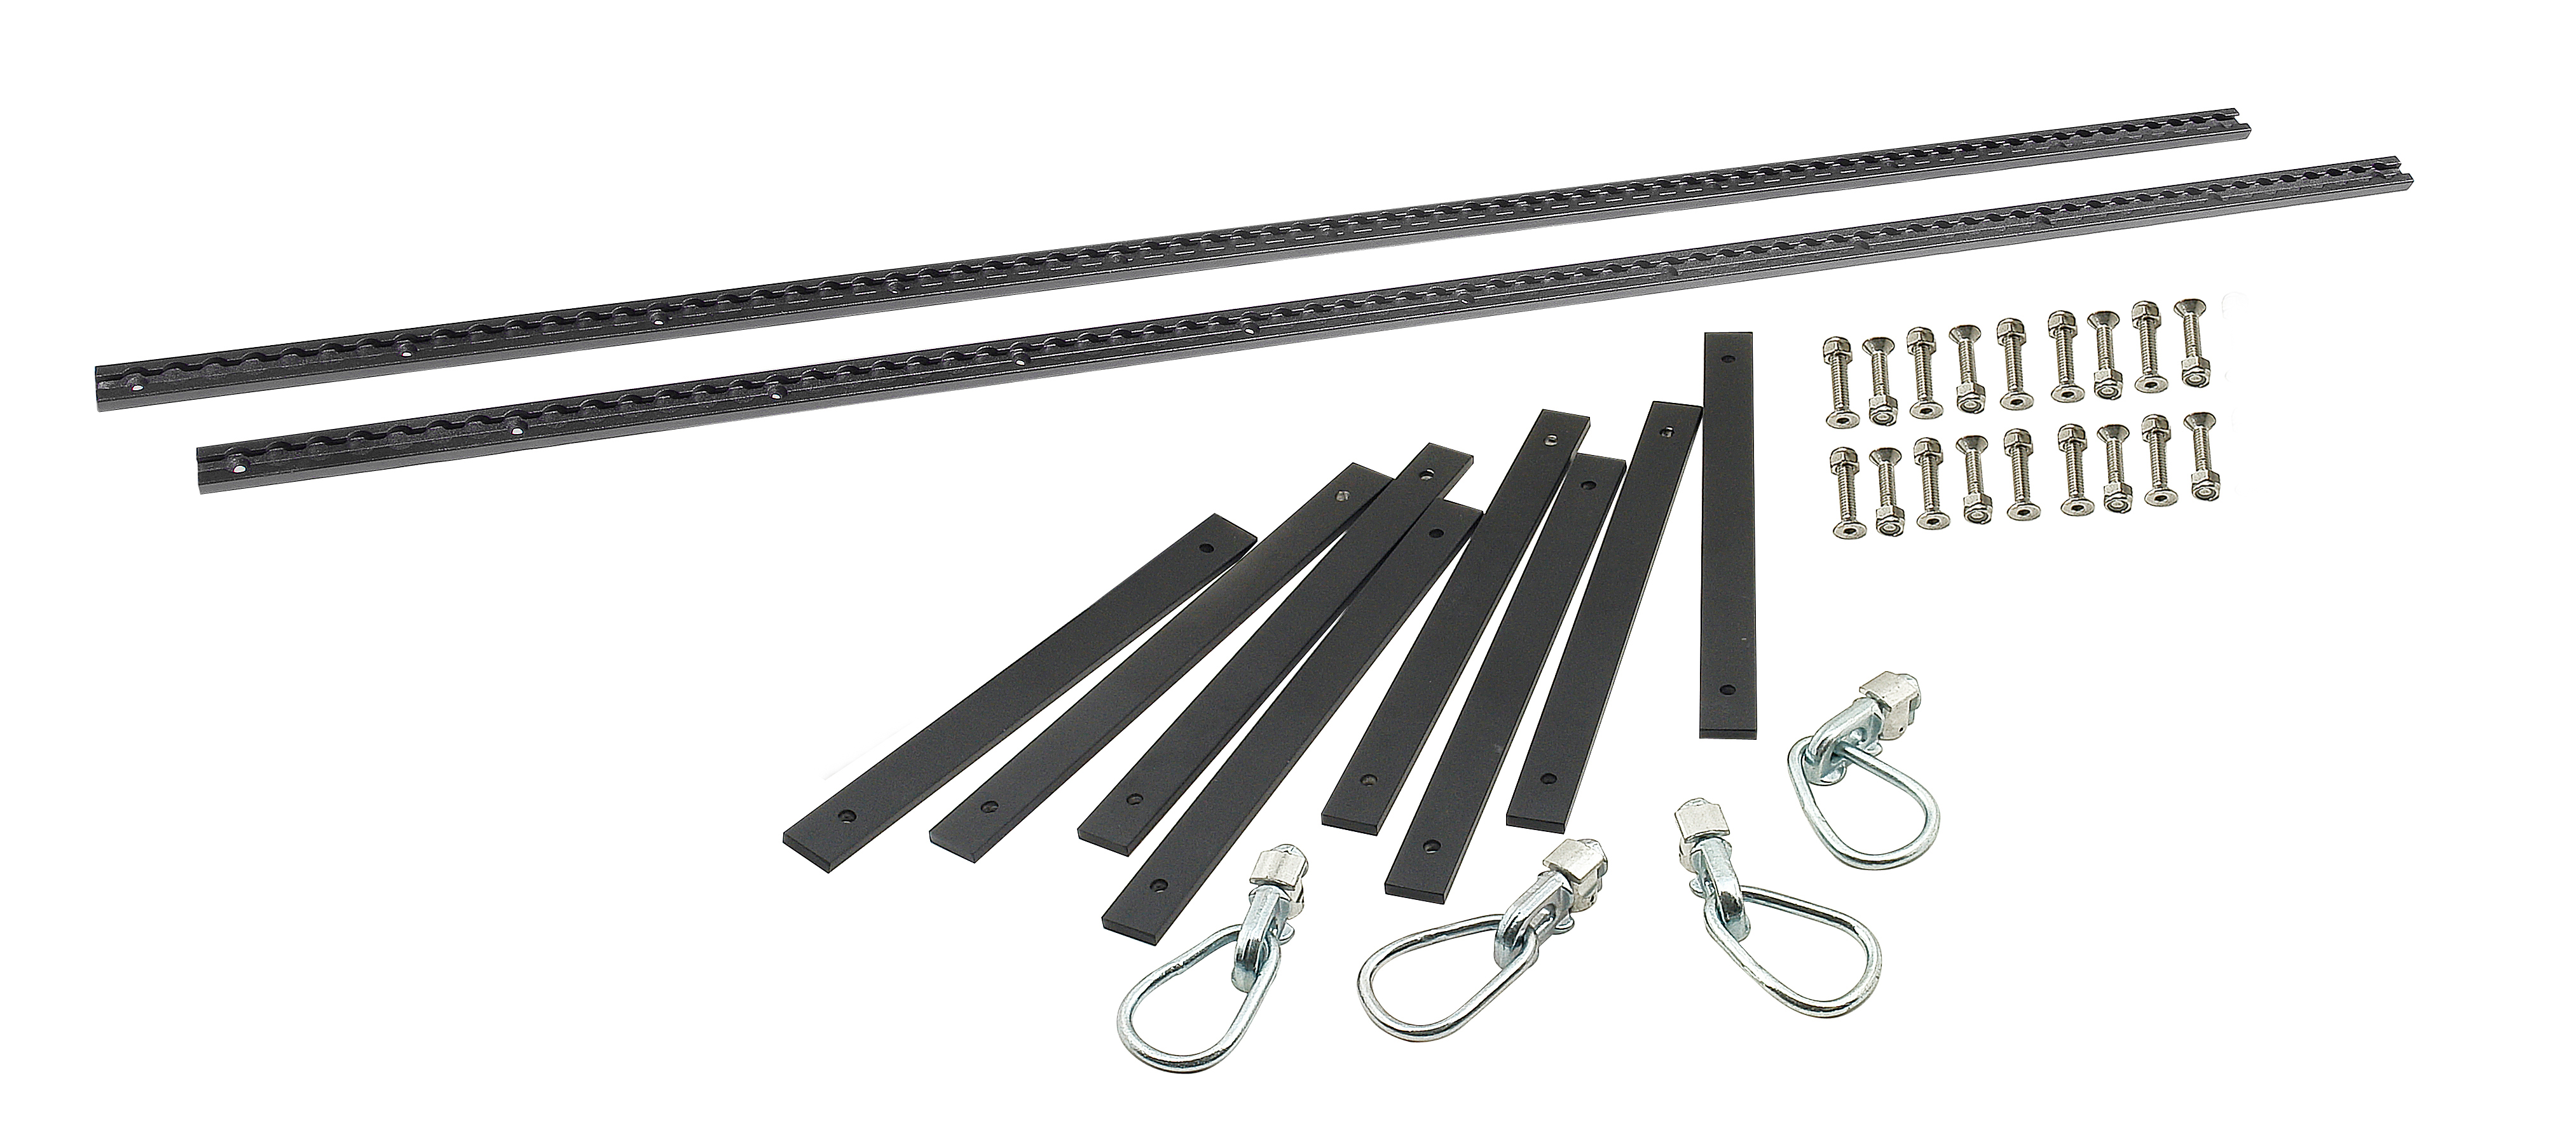 Mr Gasket Anchortrax Kit Track System Truck Styling